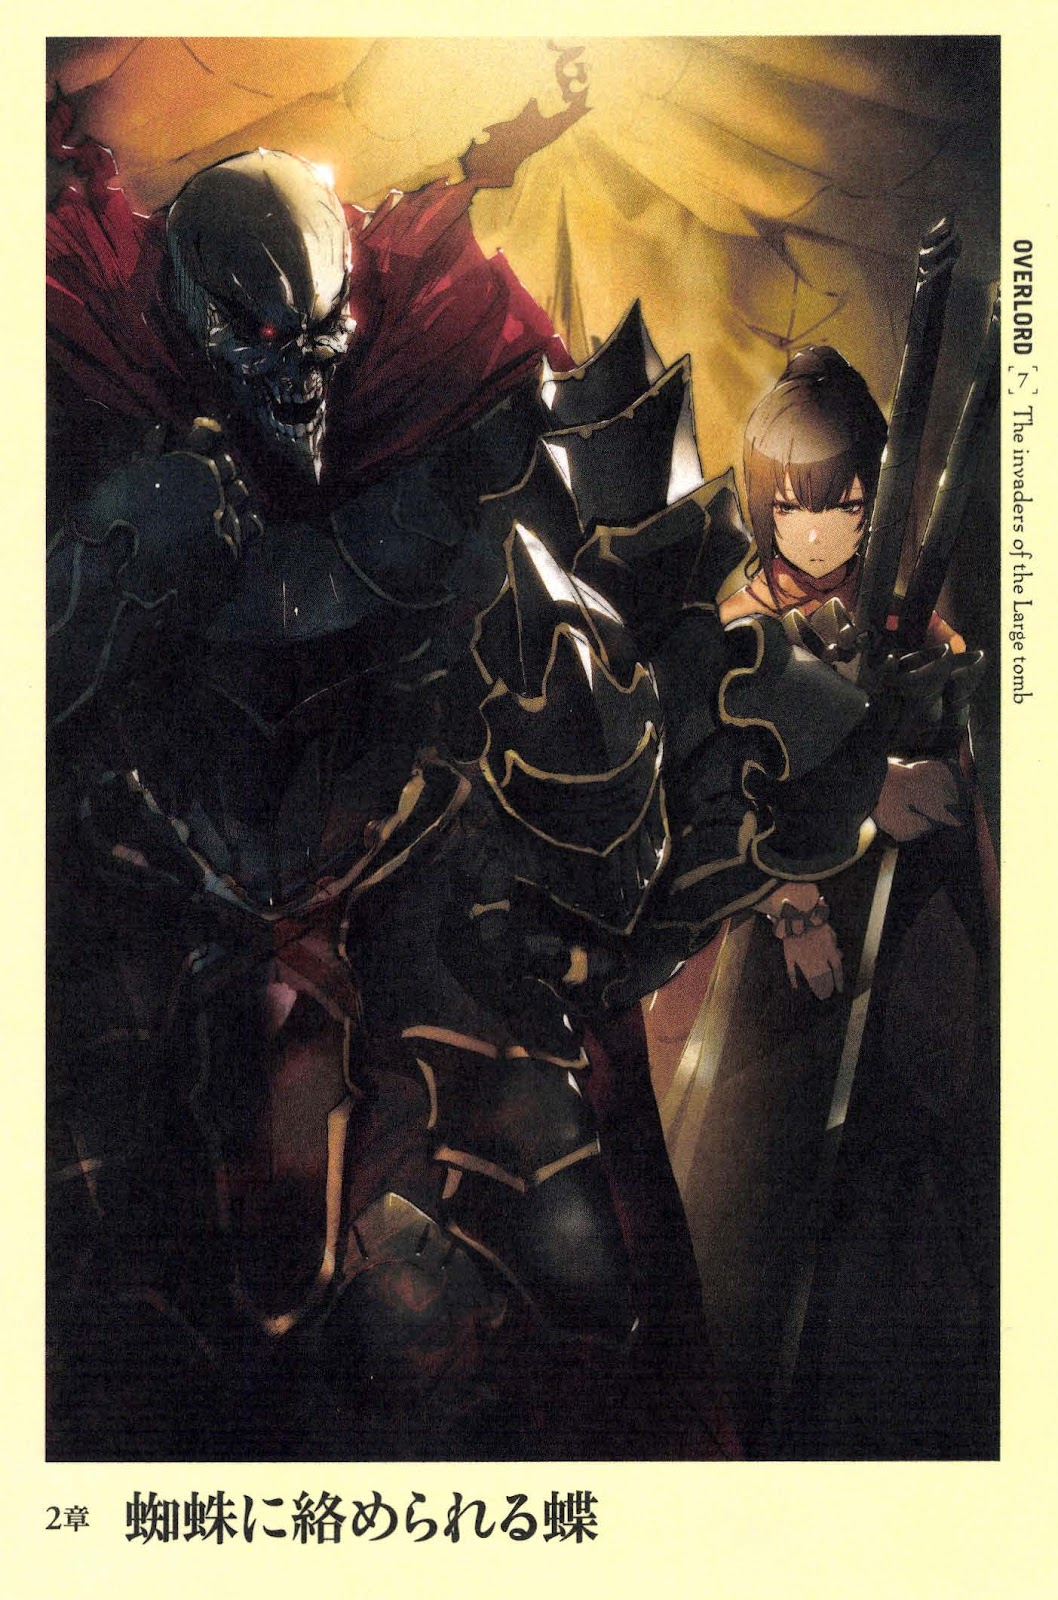 Skythewood translations: Overlord Volume 7 Chapter 2